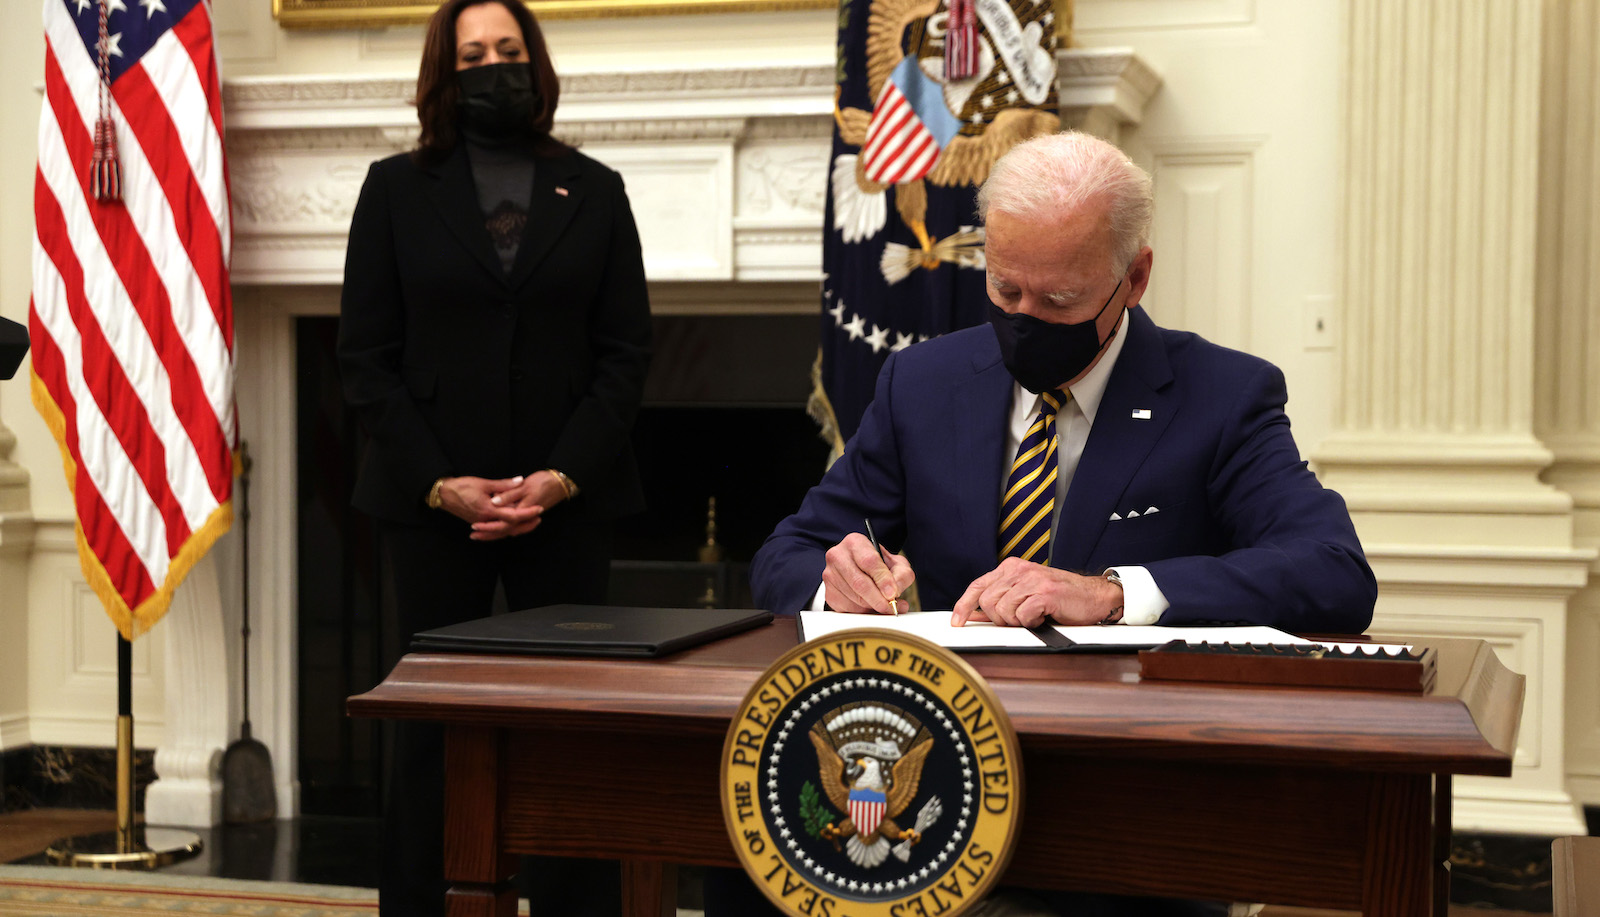 Biden signing executive orders behind his desk.